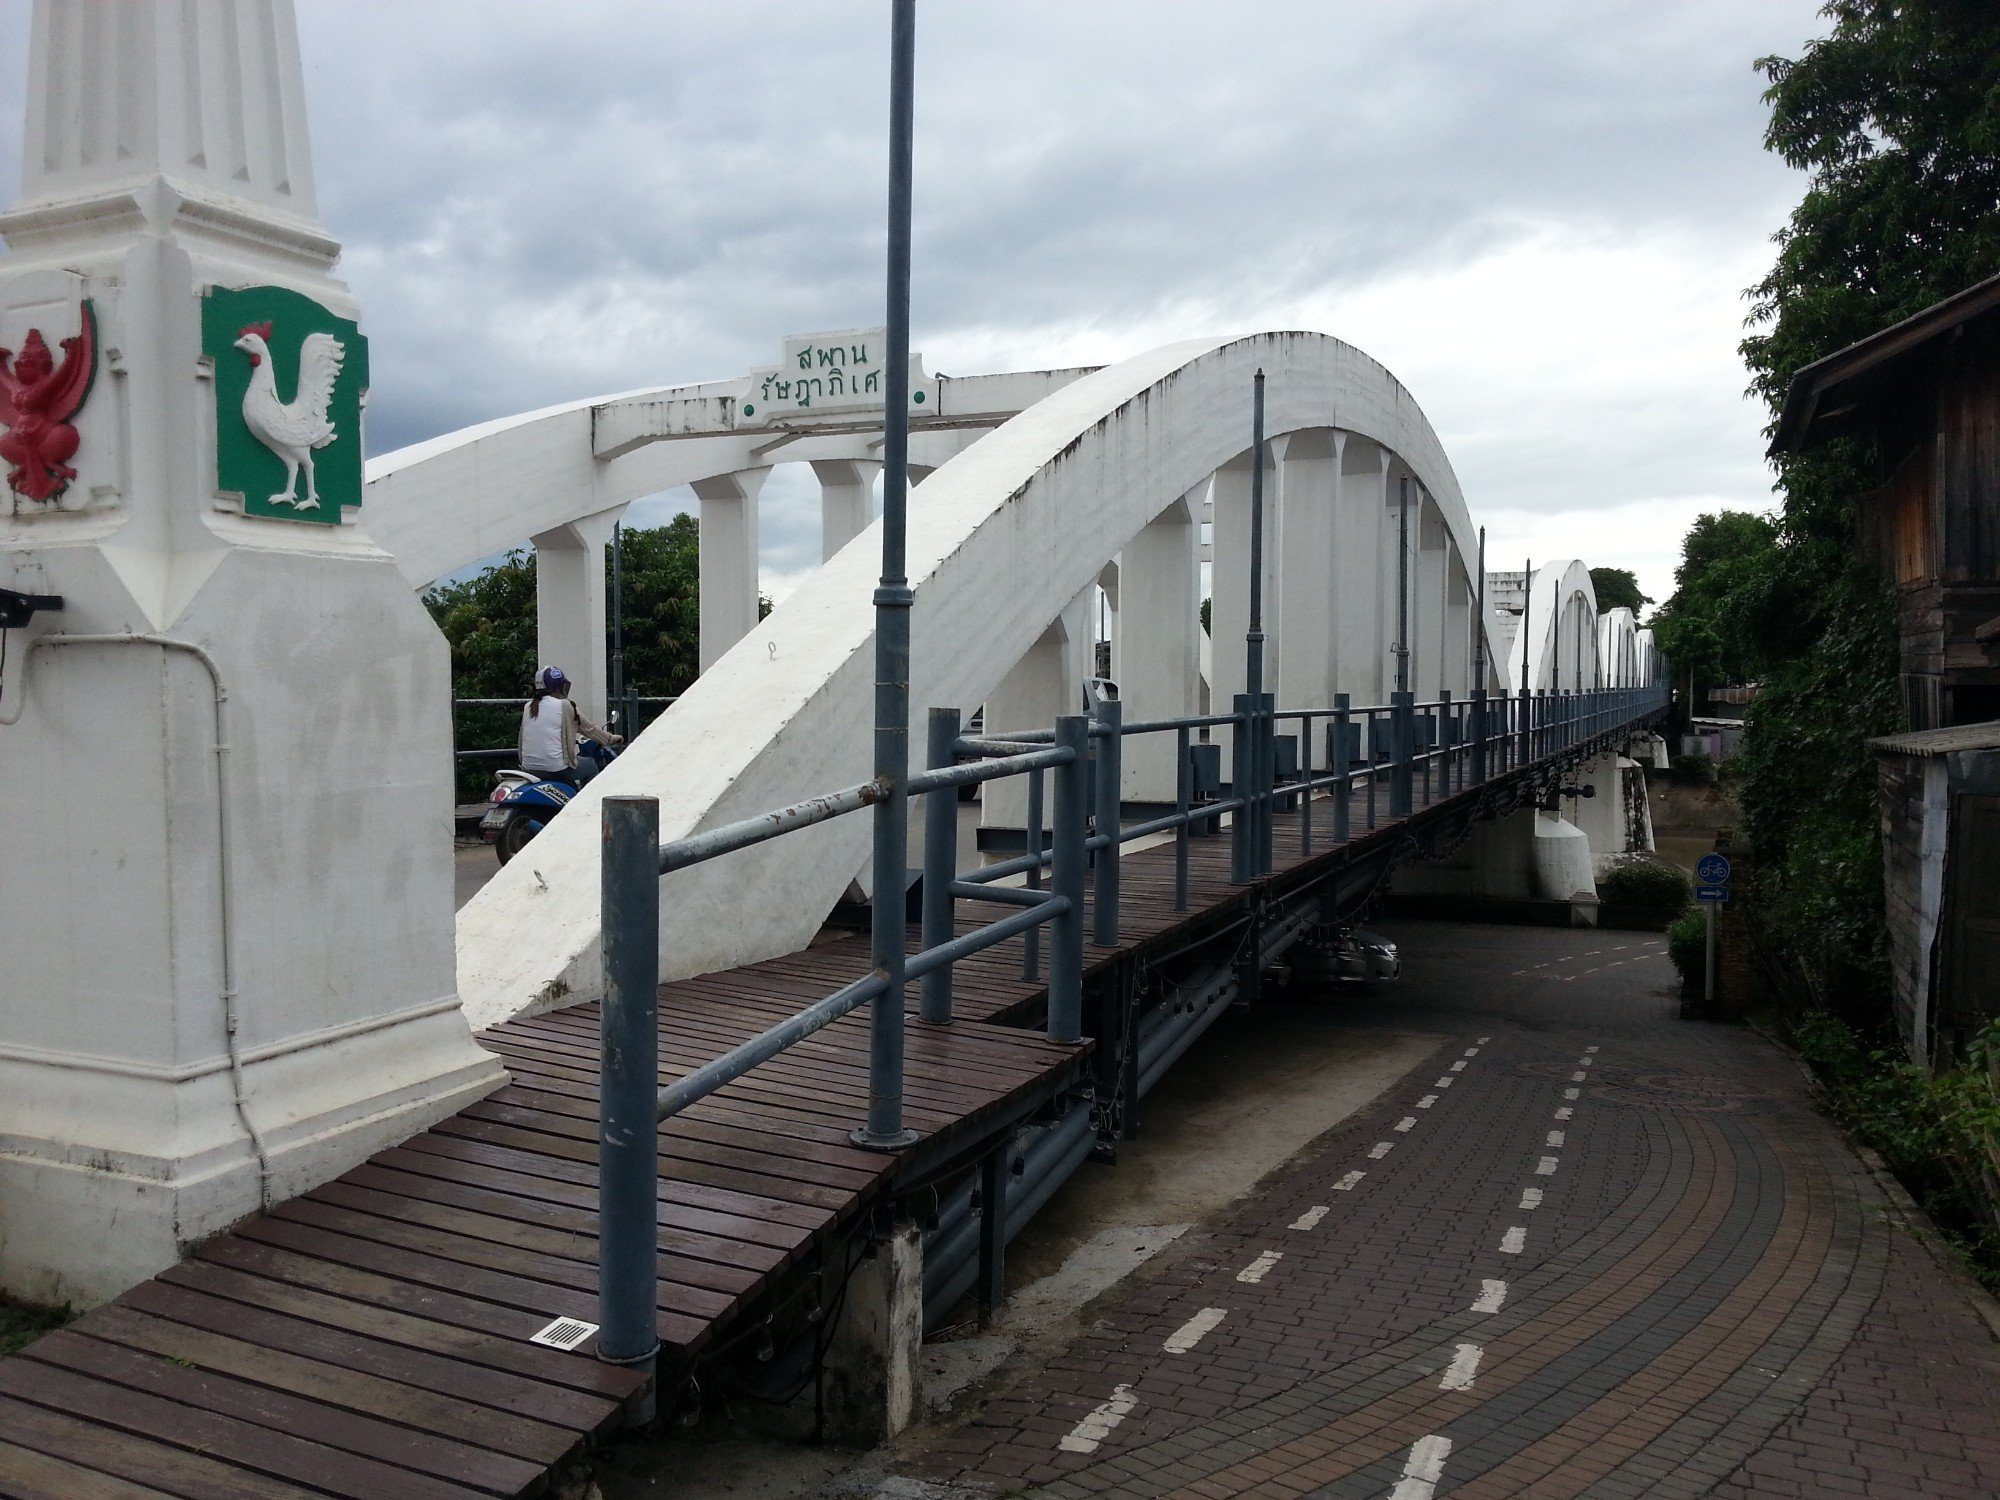 Pedestrian Walkway on the Ratsadaphisek Bridge